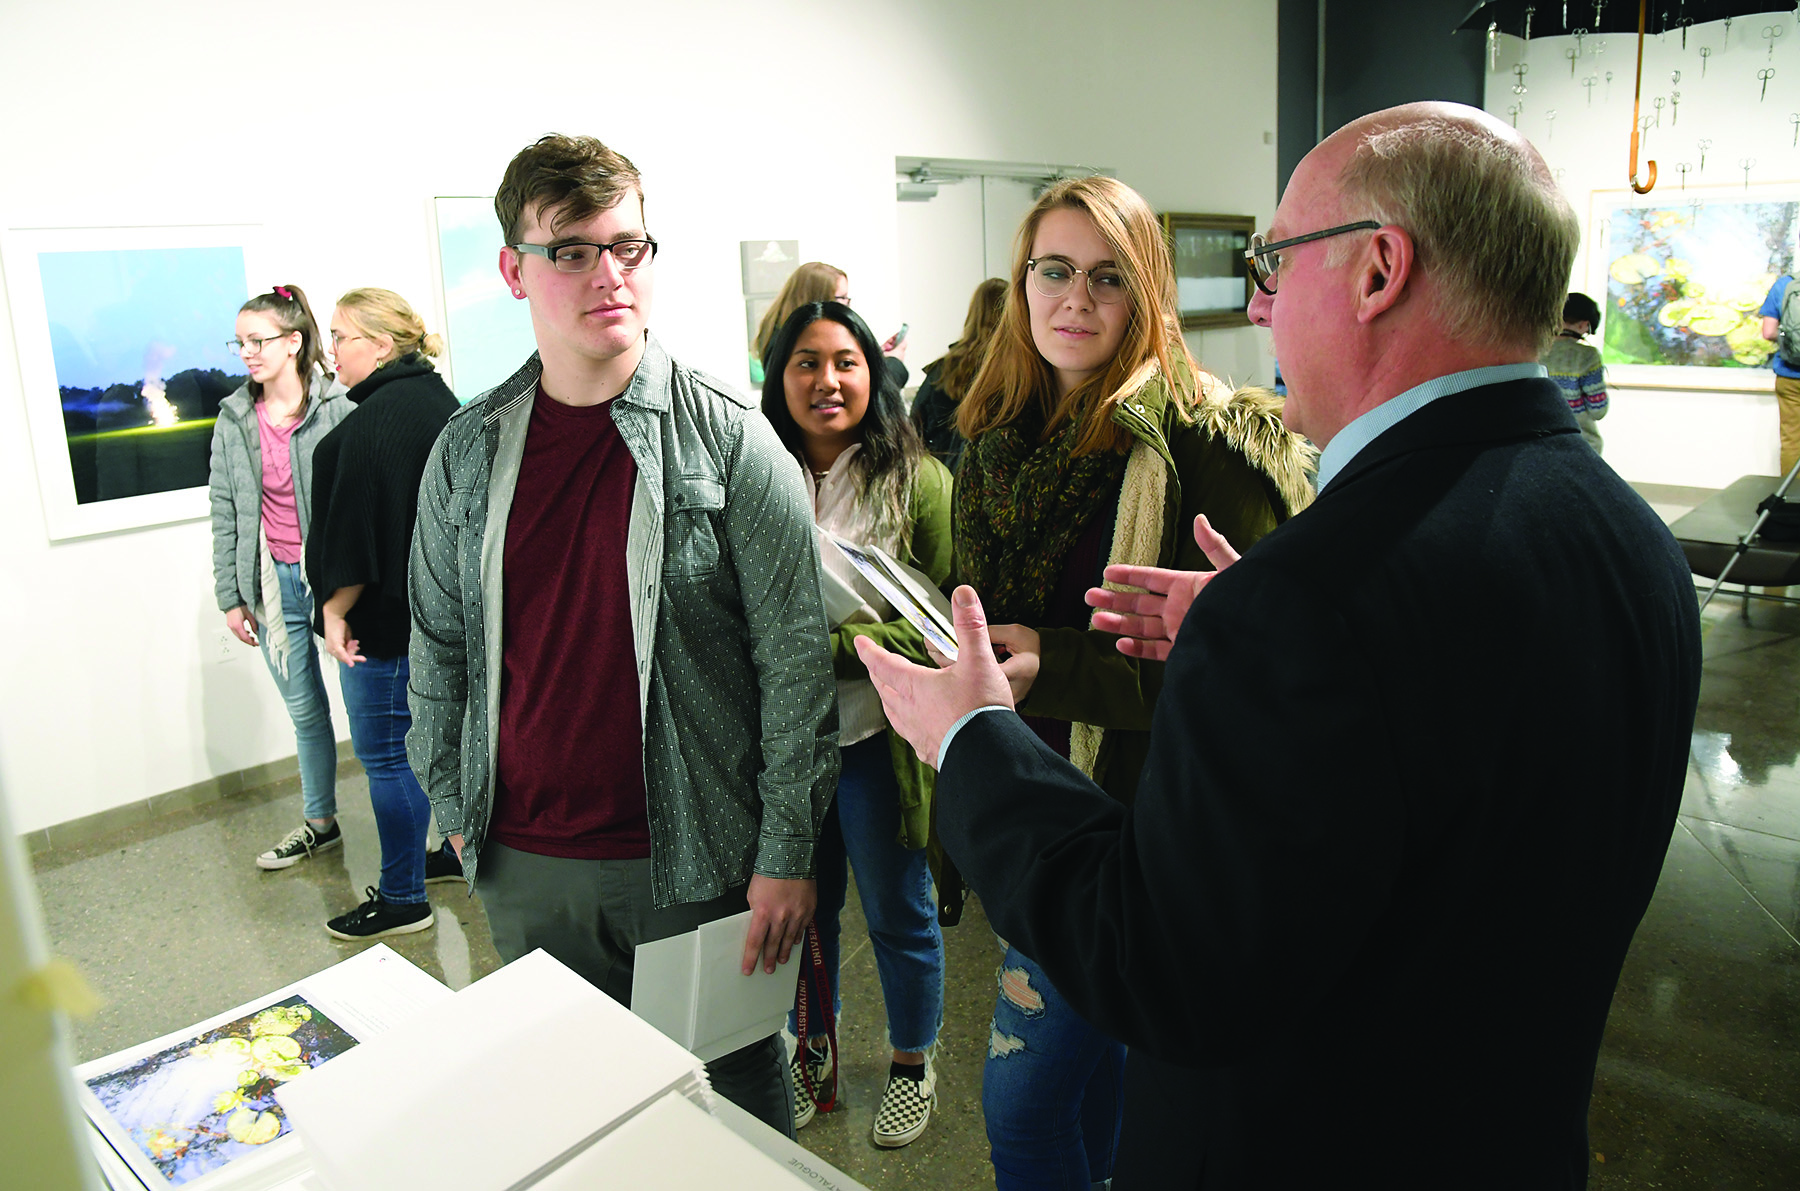 Professor Michael Campbell (right) talks with art and design students at the exhibit opening.